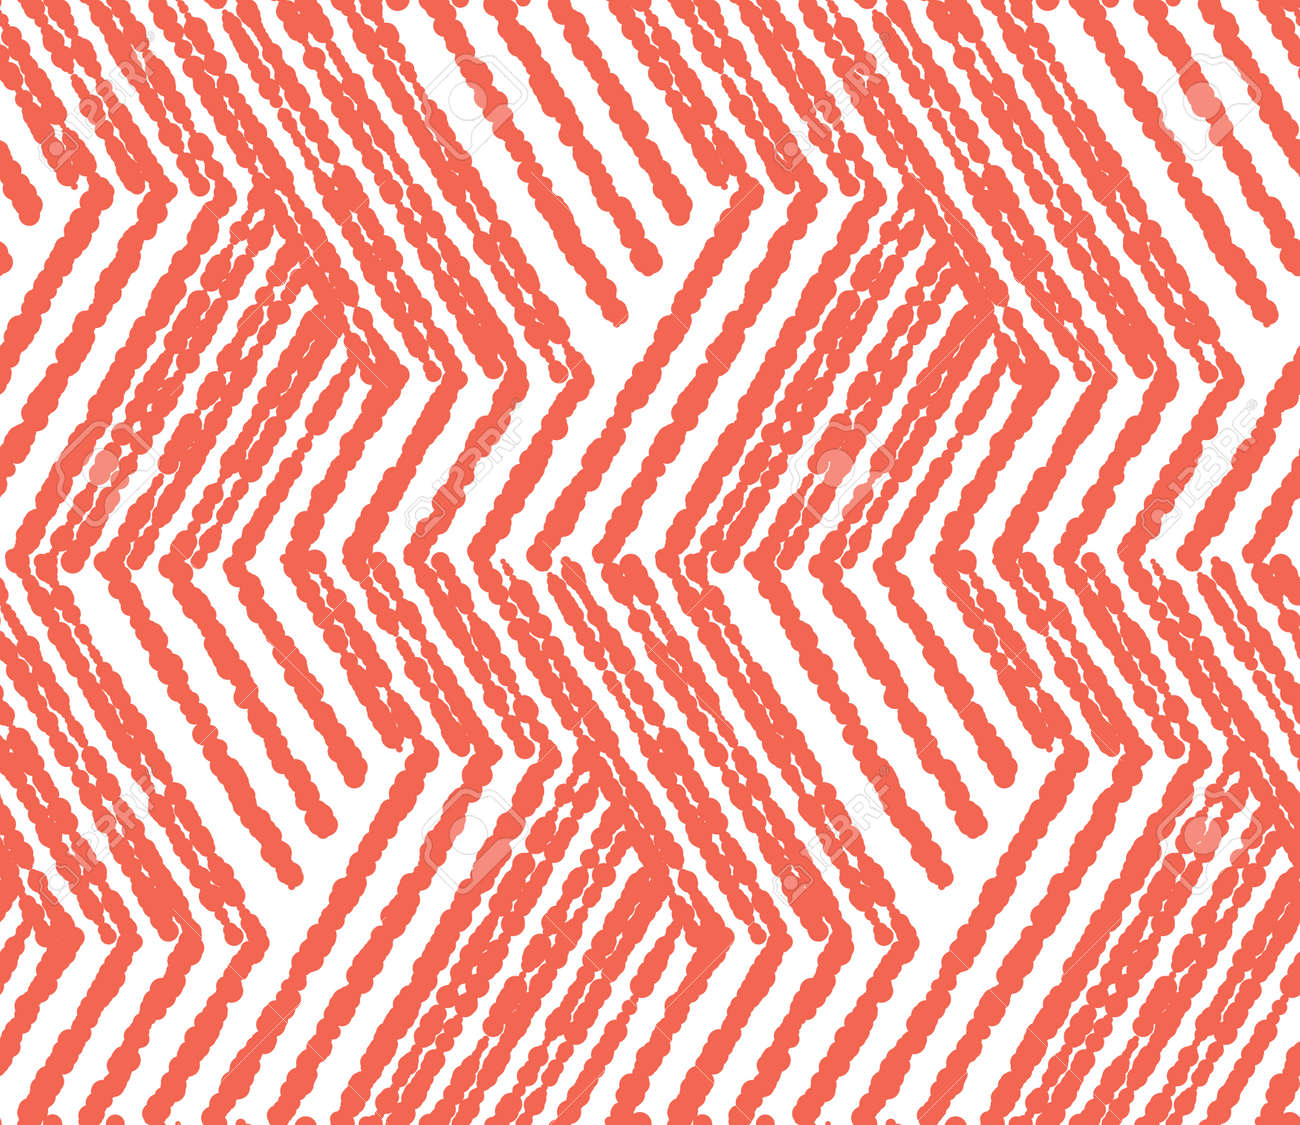 Abstract geometric pattern with stripes, lines. Seamless vector background. White and pink ornament. Simple lattice graphic design - 169878881